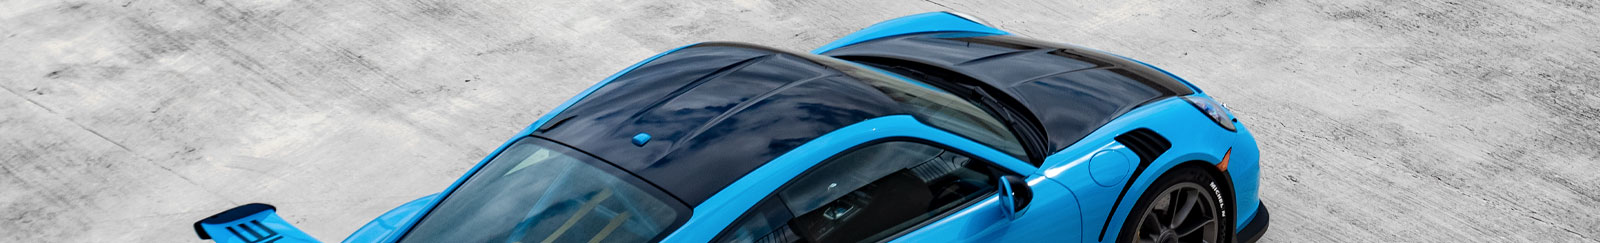 ULTIMATE PLUS BLACK PPF - High Gloss Black Paint Protection Film